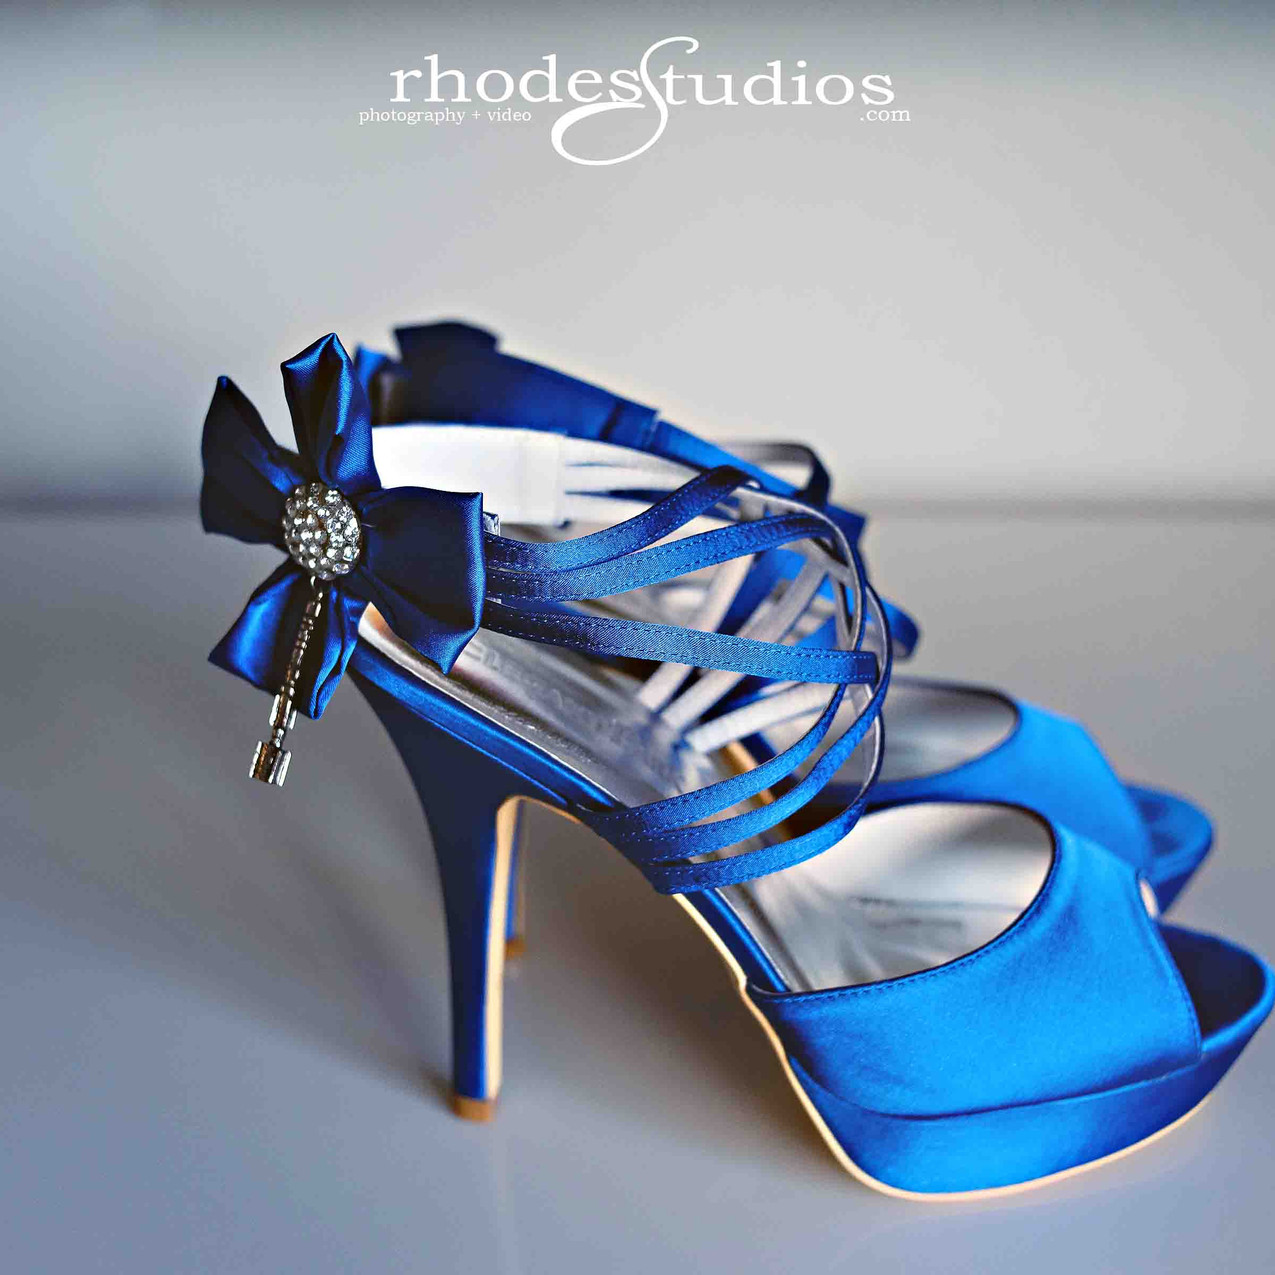 Her blue shoes